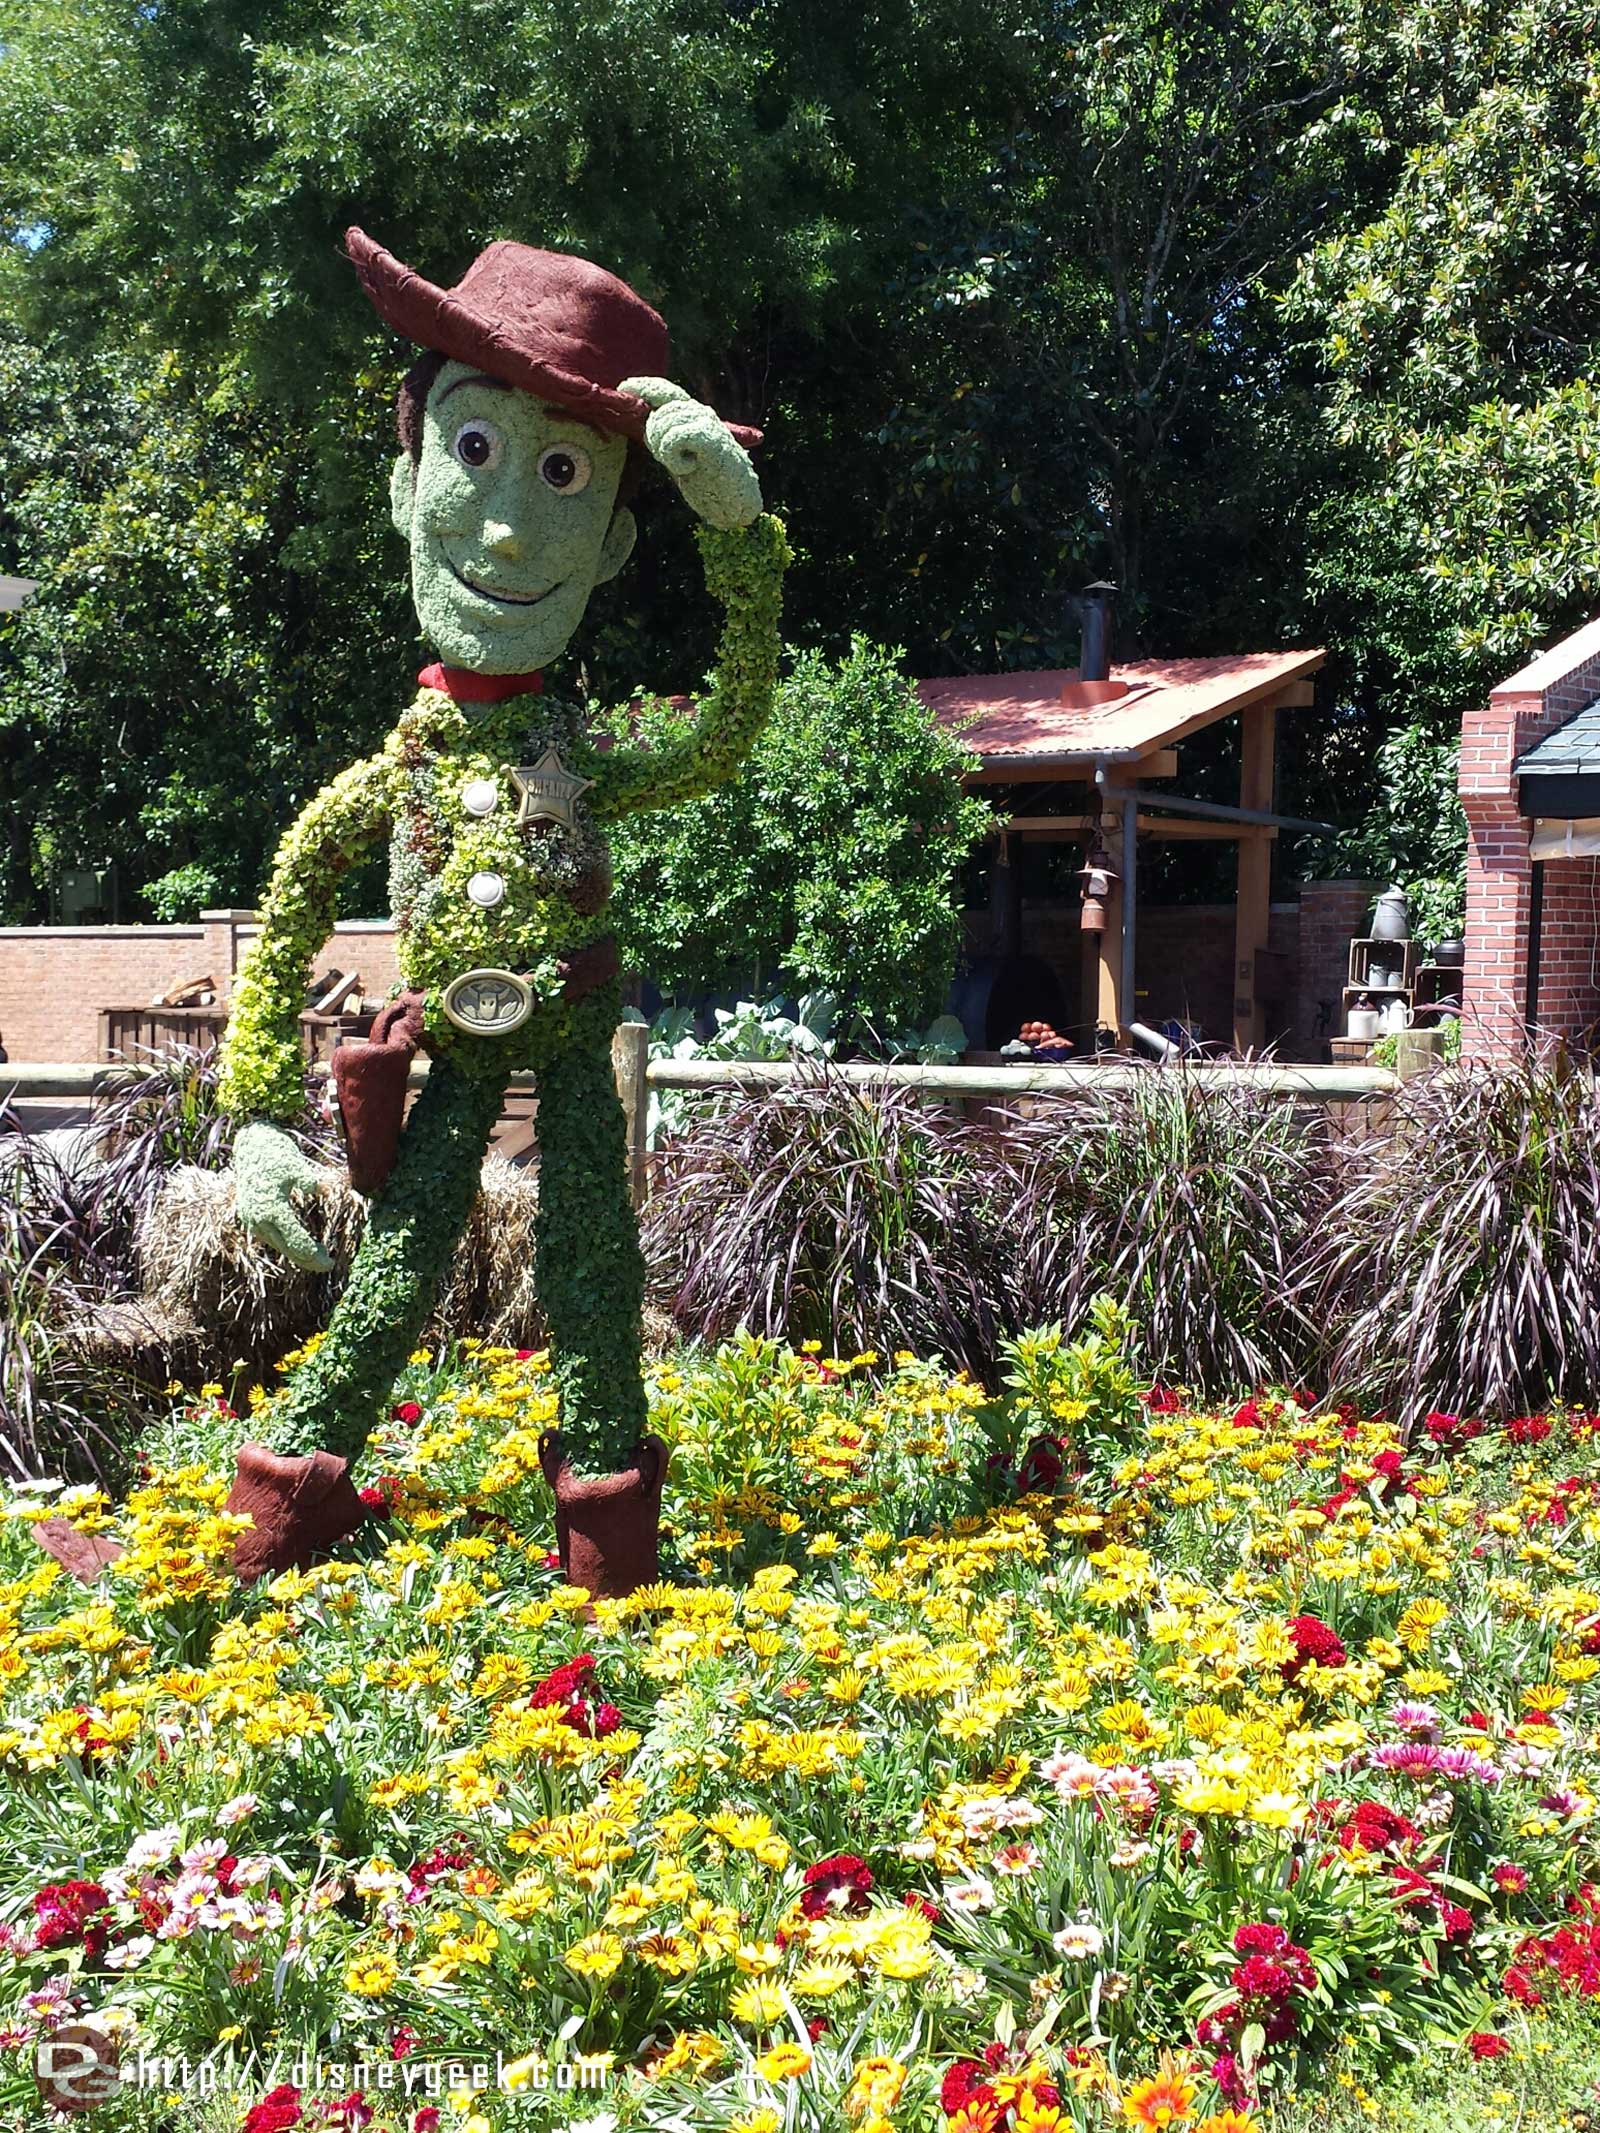 Woody topiary by the American Adventure    –  Epcot International Flower & Garden Festival